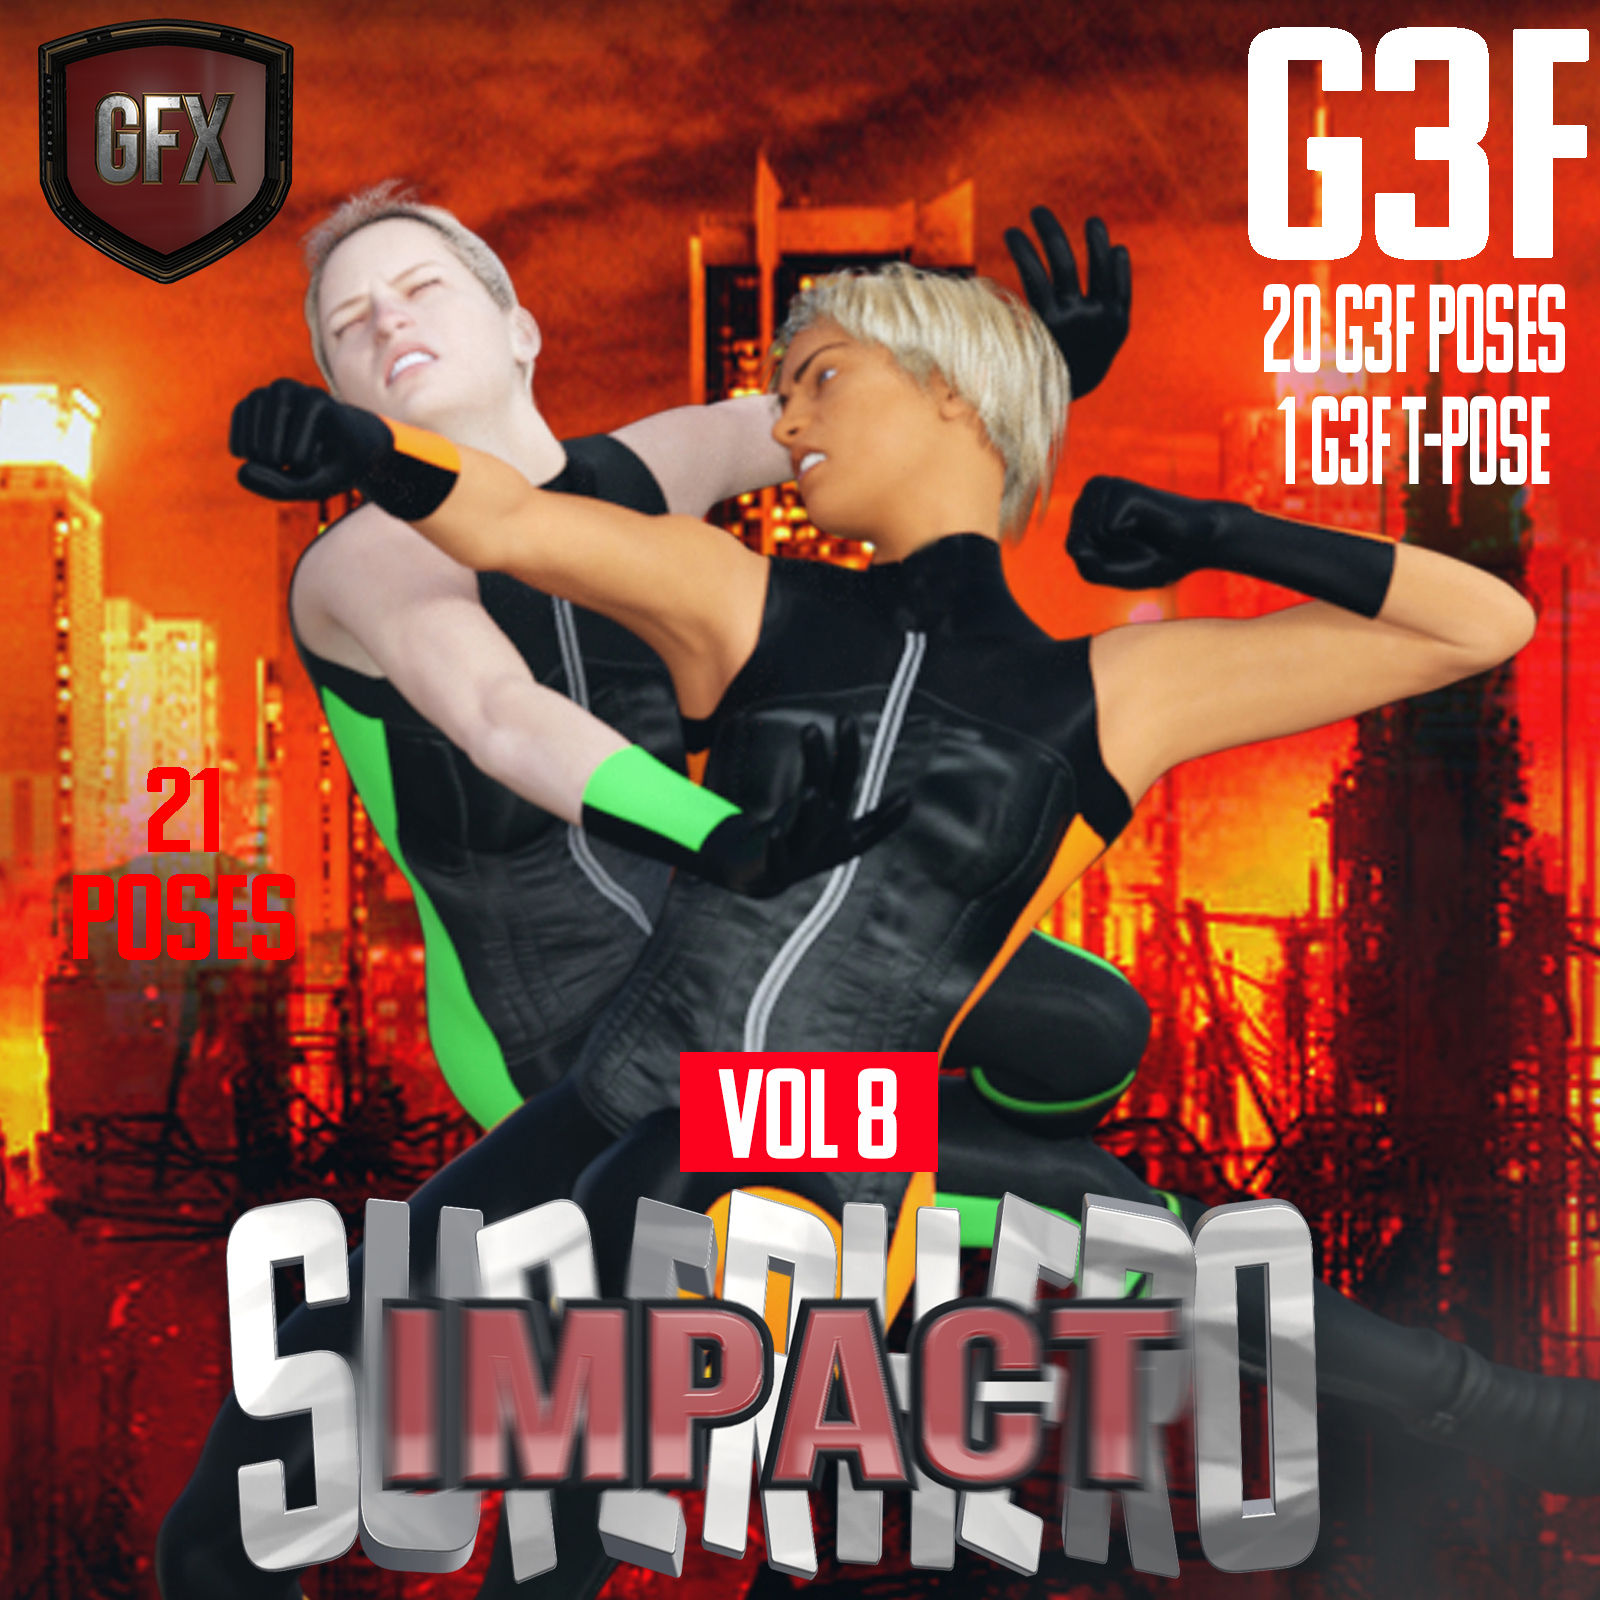 SuperHero Impact for G3F Volume 8 by GriffinFX